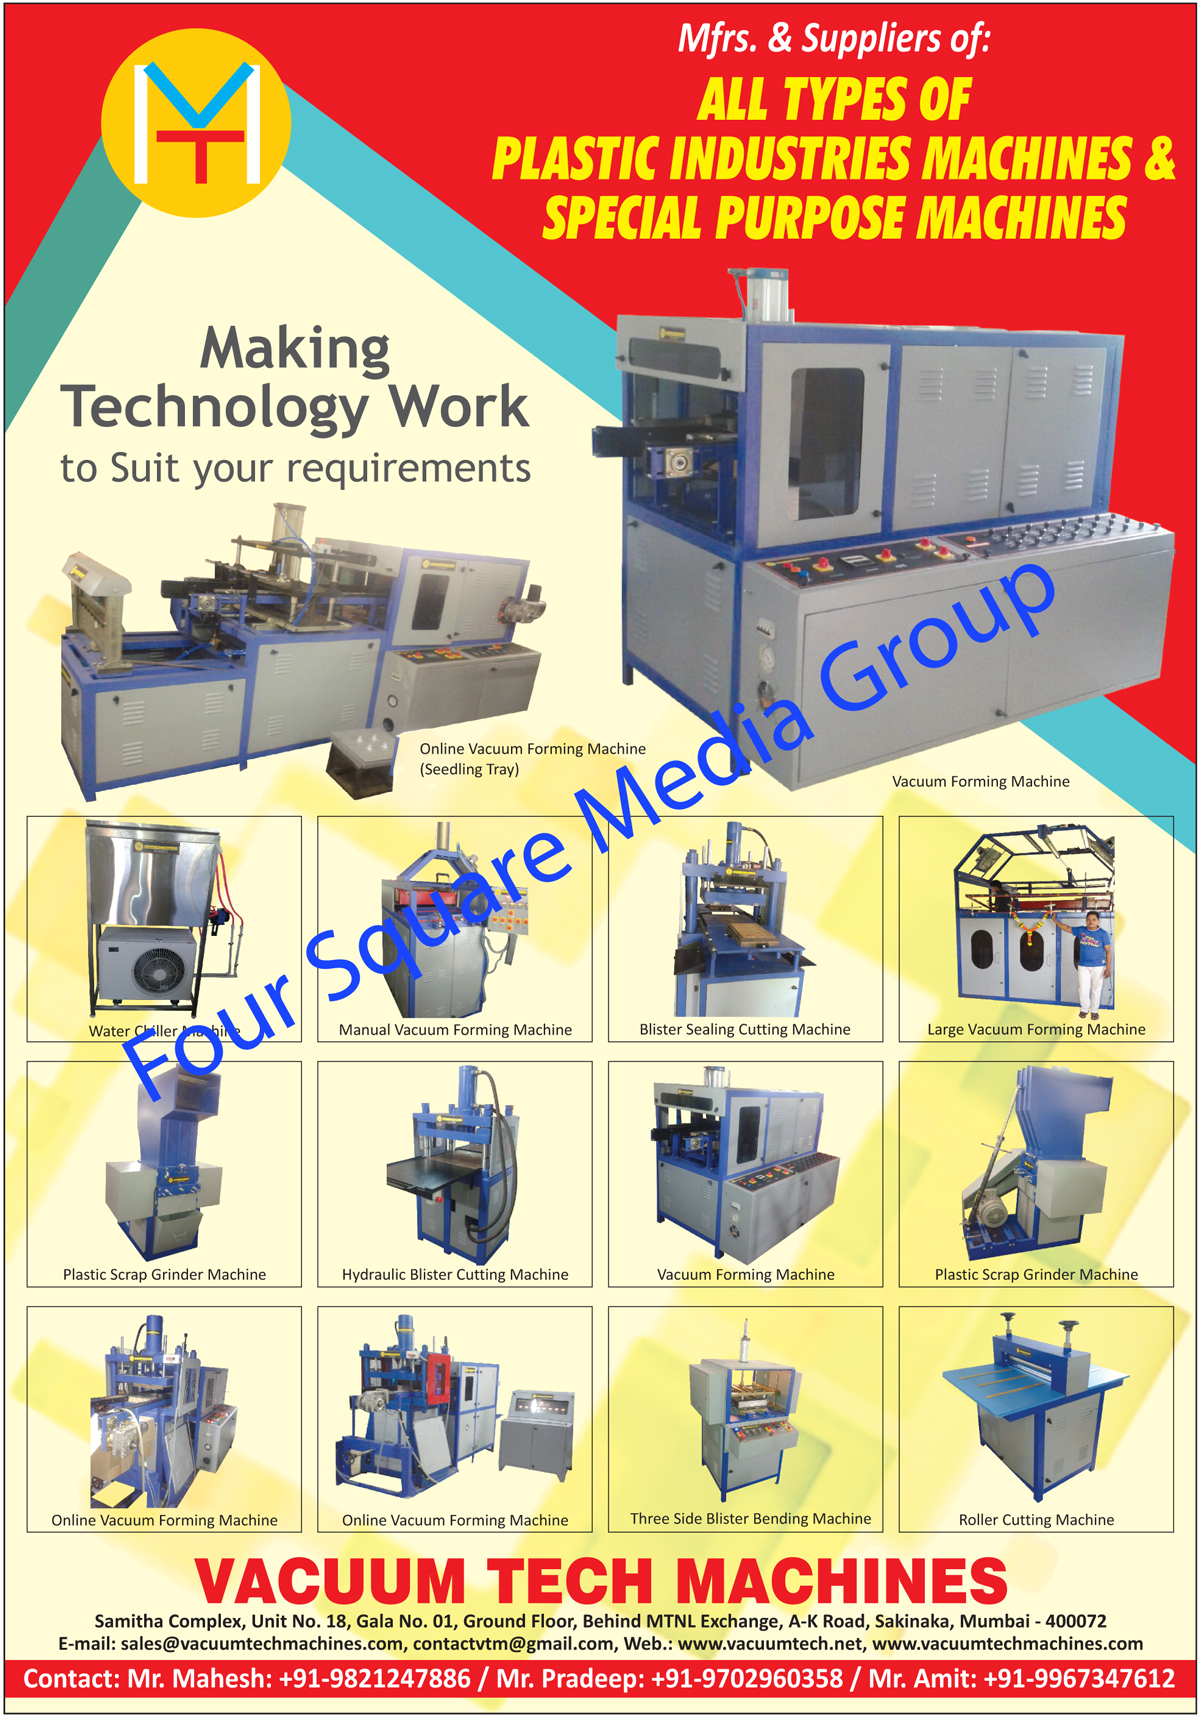 Plastic Industries Machines, Special Purpose Machines, Seeding Tray Online Vacuum Forming Machines, Vacuum Forming Machines, Water Chiller Machines, Manual Vacuum Forming Machines, Blister Sealing Cutting Machines, Large Vacuum Forming Machines, Plastic Scrap Grinder Machines, Hydraulic Blister Cutting Machines, Online Vacuum Forming Machines, Three Side Blister Bending Machines, Roller Cutting Machines